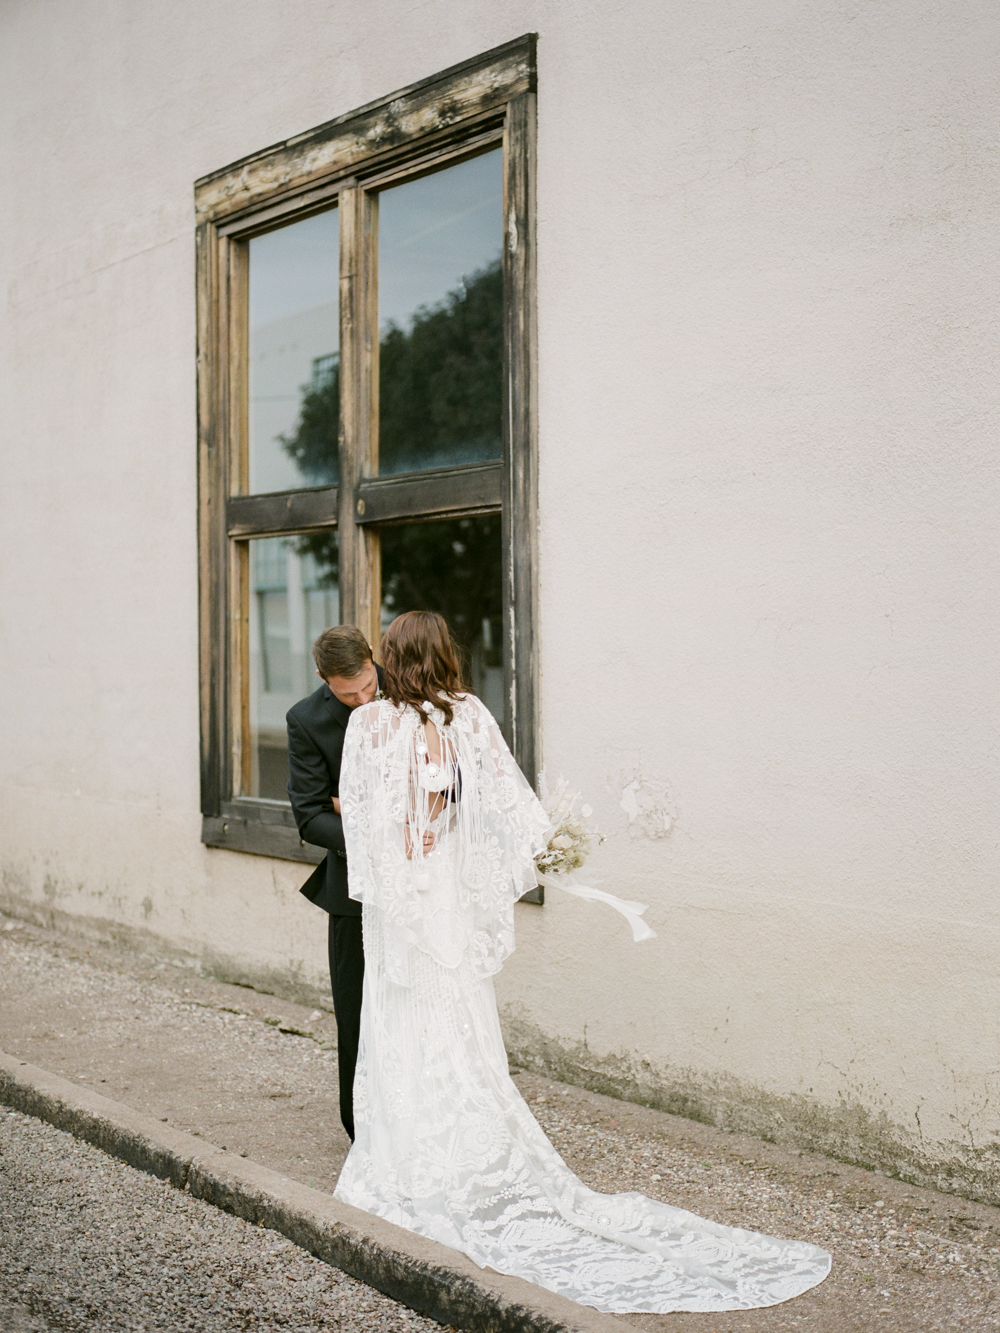 Marfa wedding photographer- destination wedding photographer-christine gosch - film photographer - elopement photographer-21.jpg